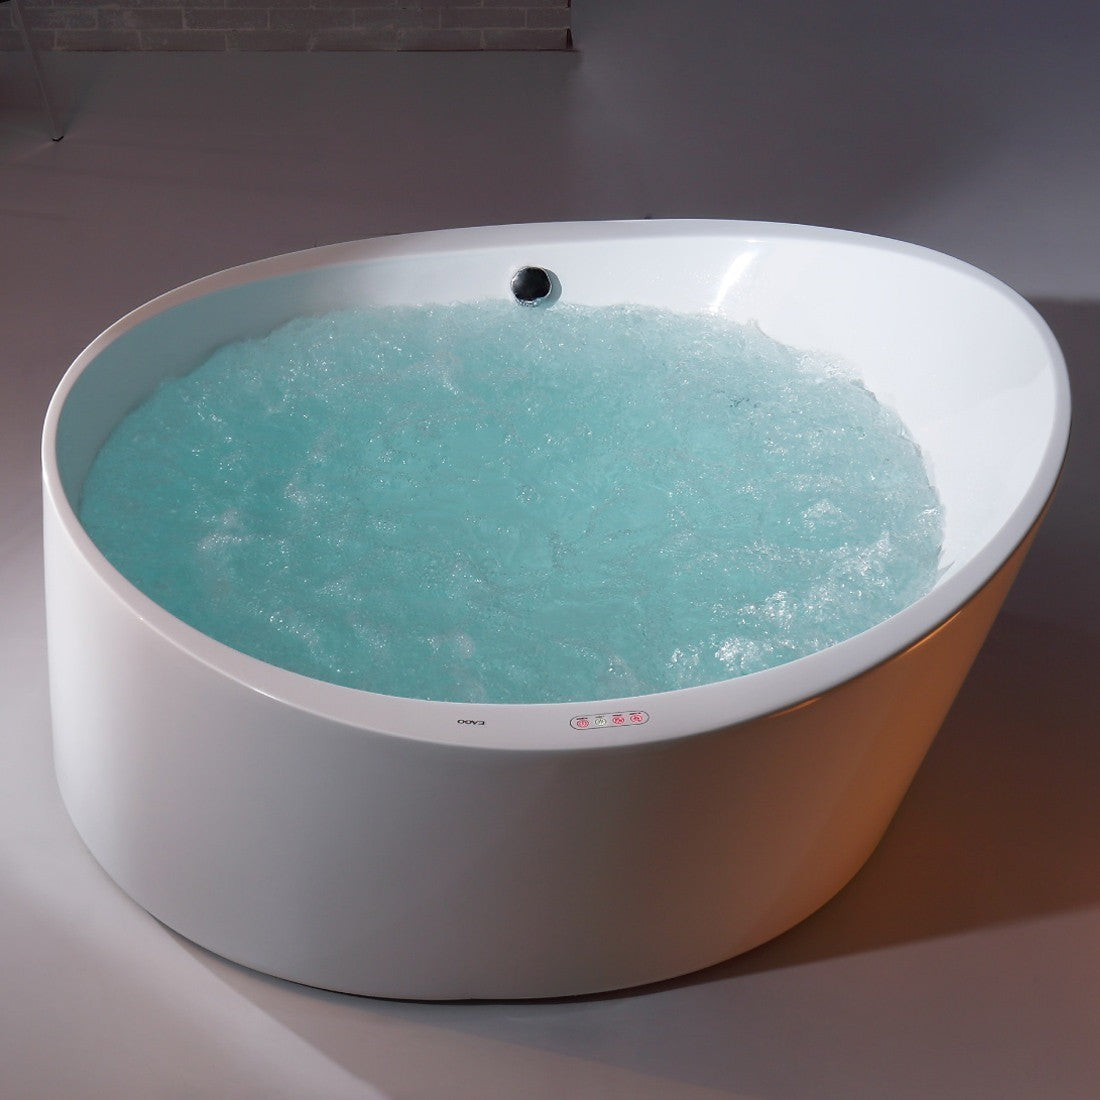 EAGO AM2130 66 Inch Round Free Standing Acrylic Air Bubble Bathtub ...